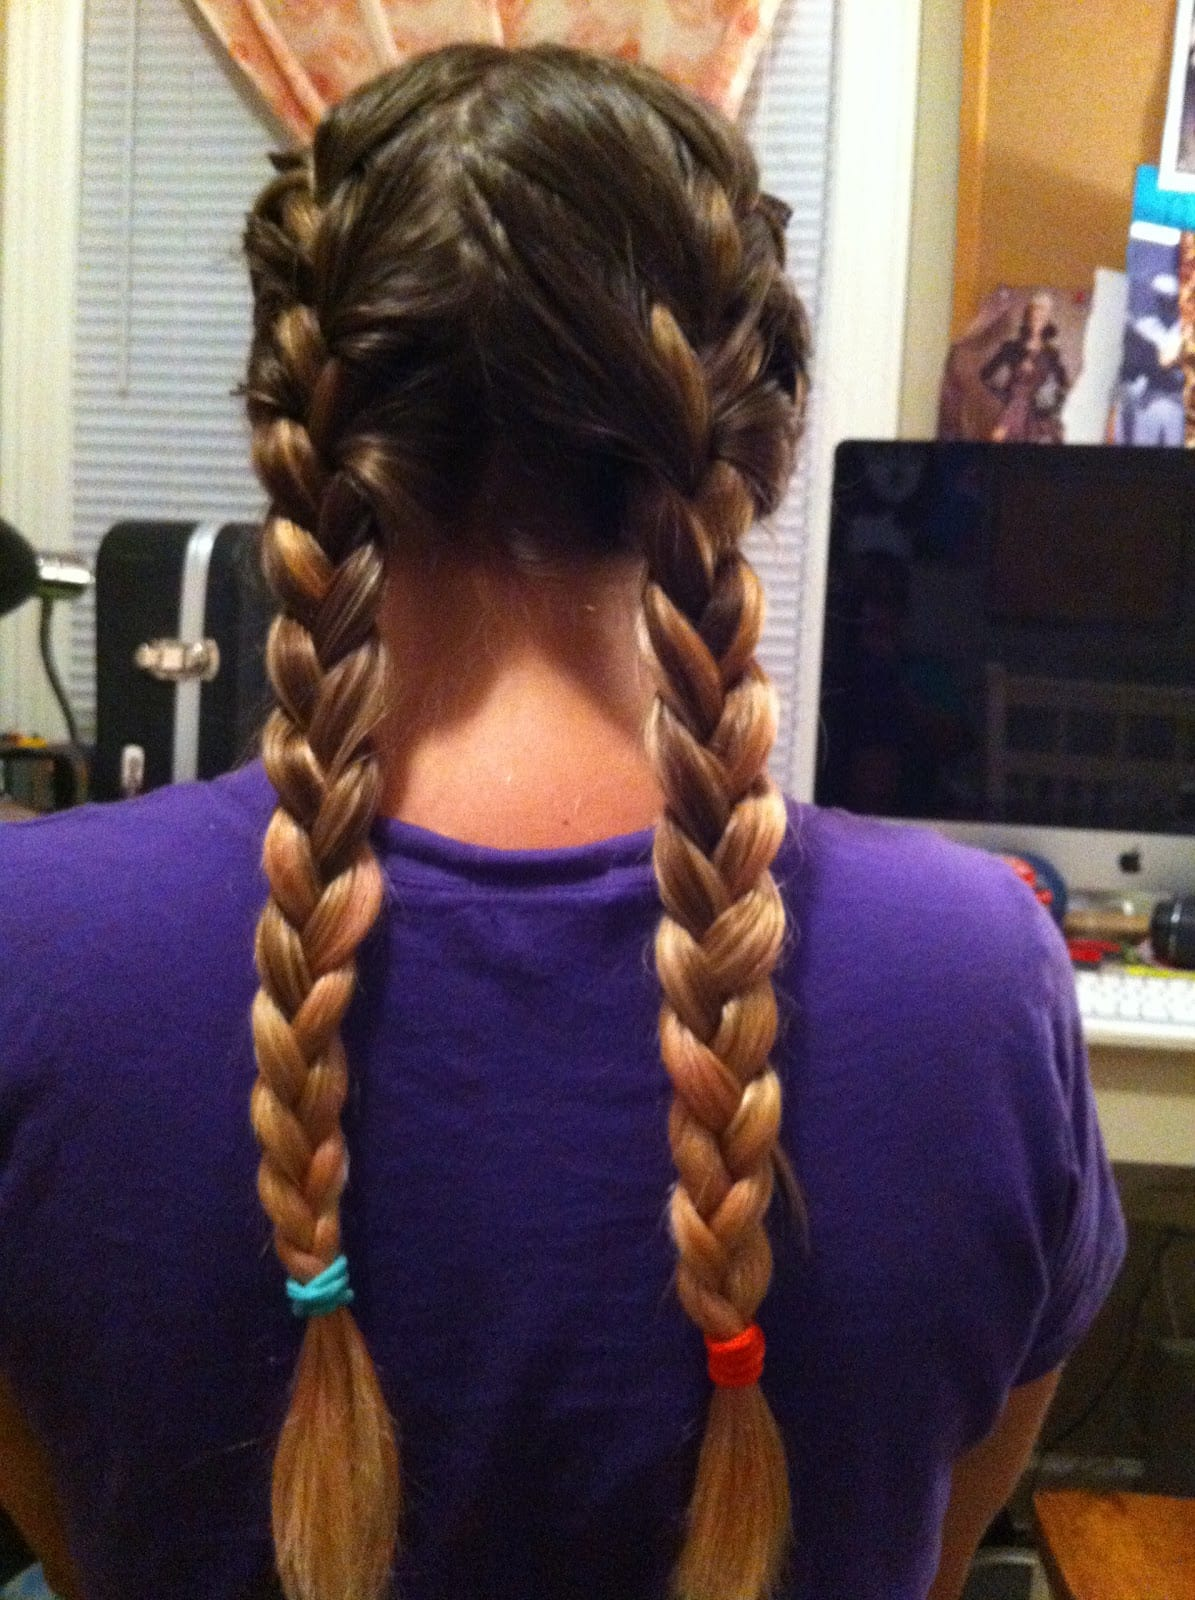 braid daughter's hair